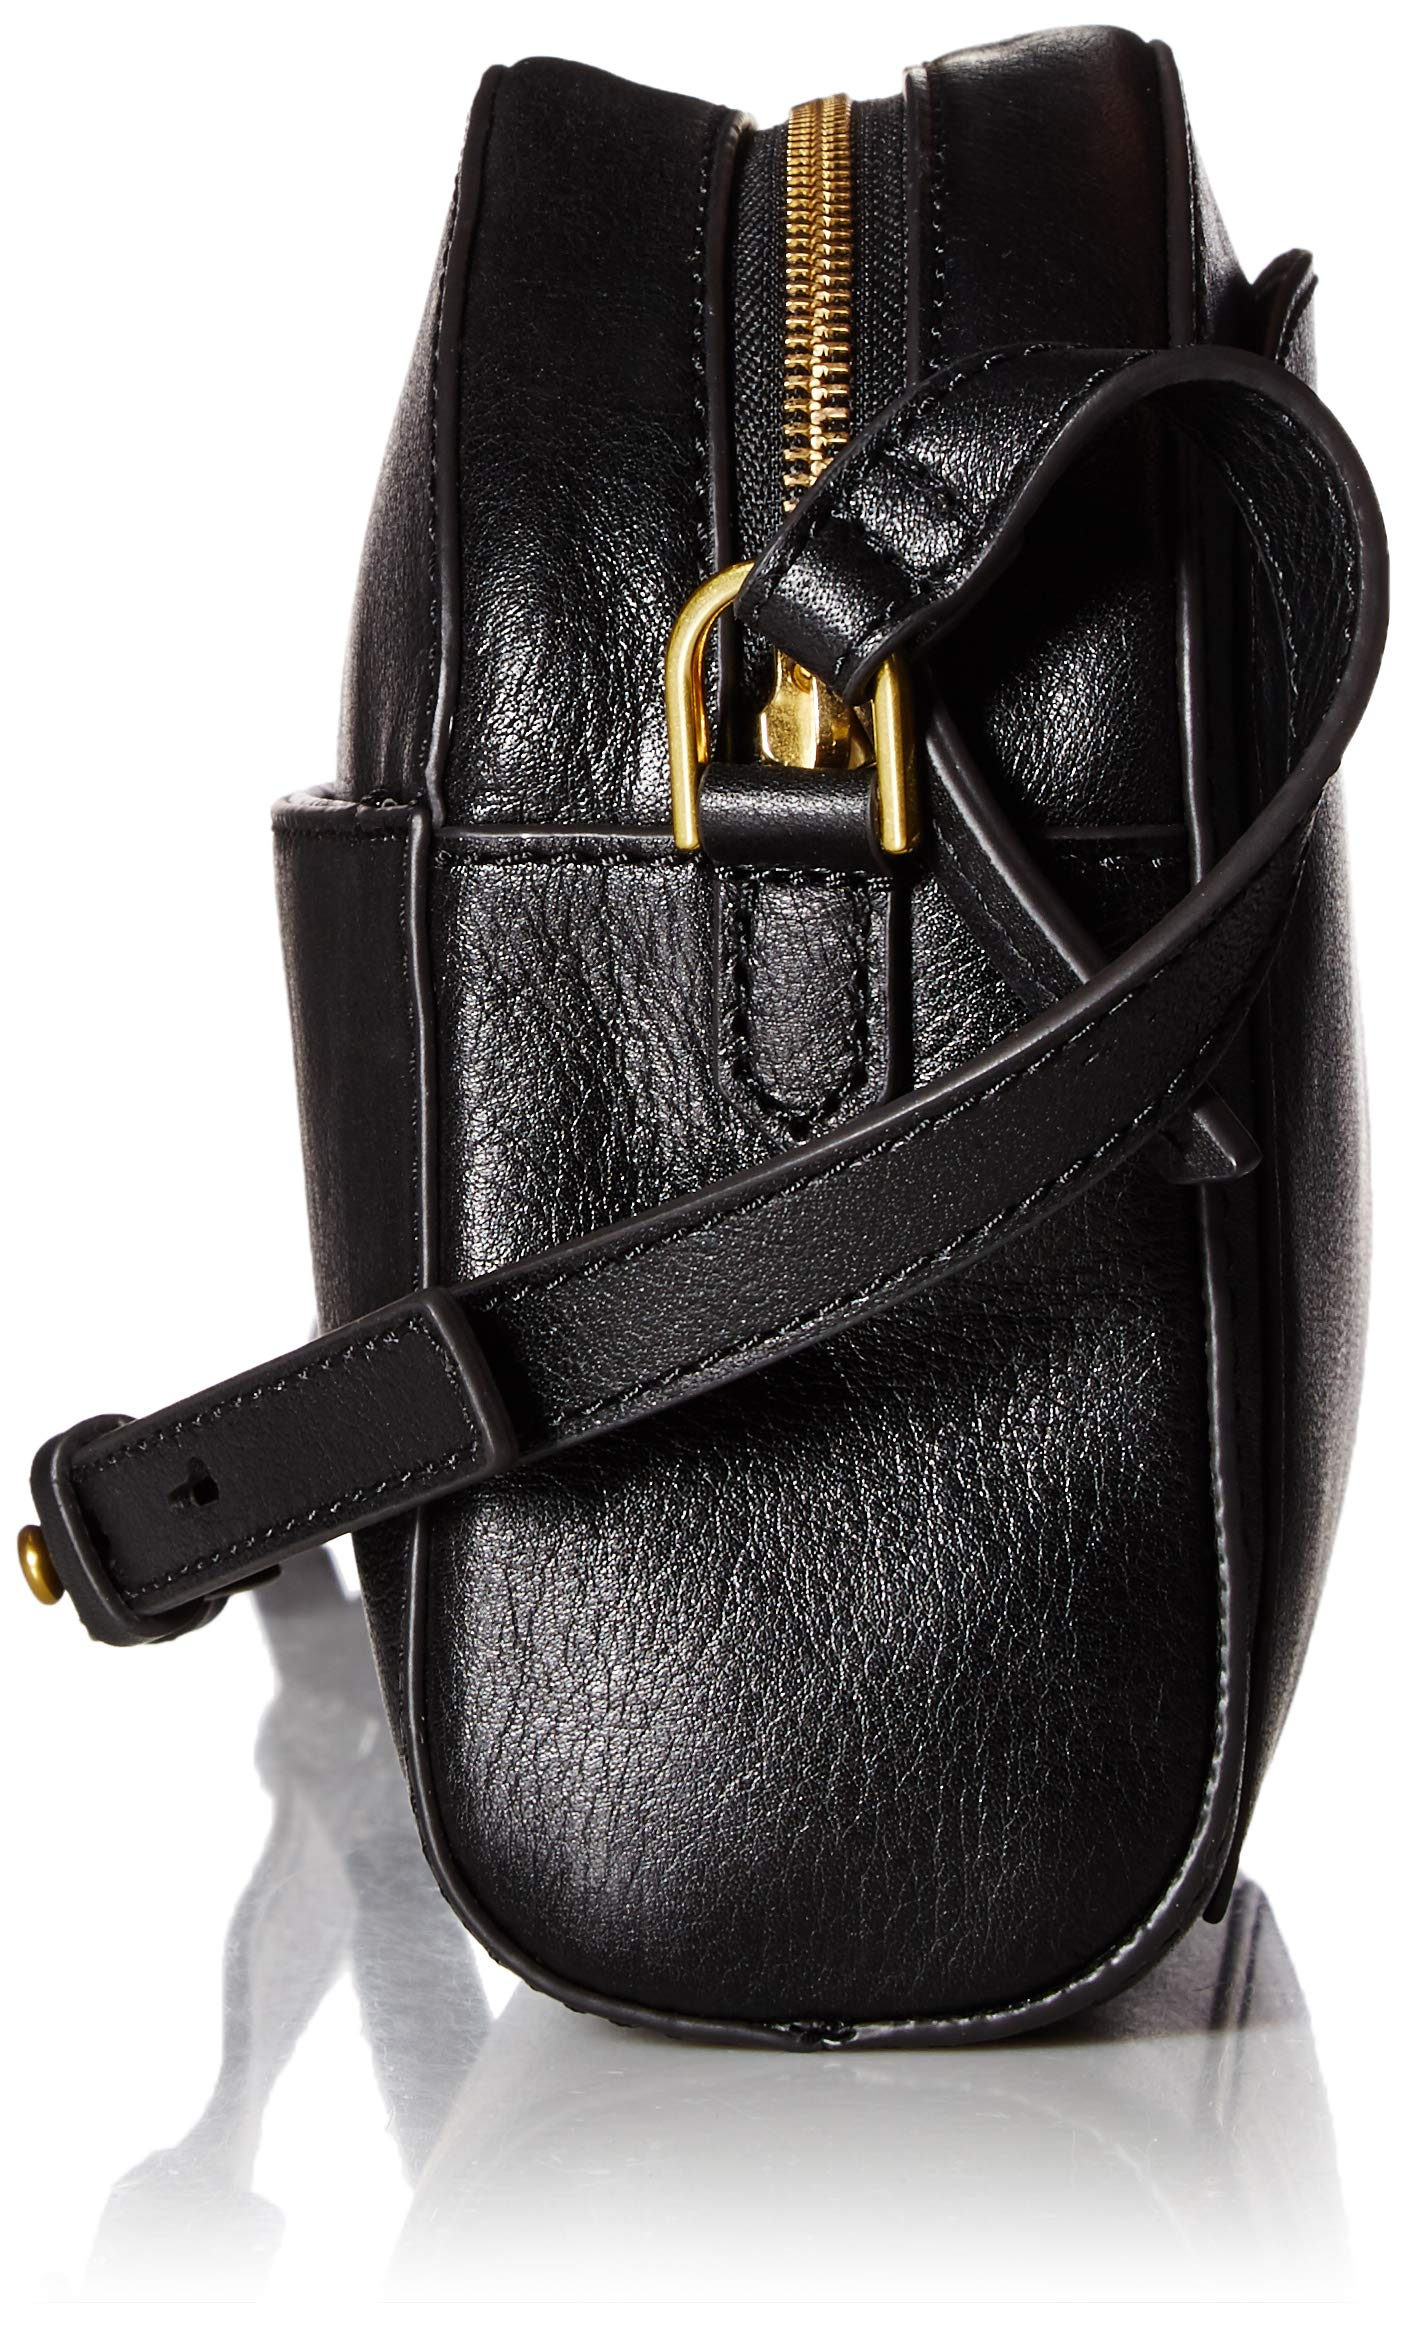 FOSSIL Women's Chelsea Bag, Black, One Size - yrGear